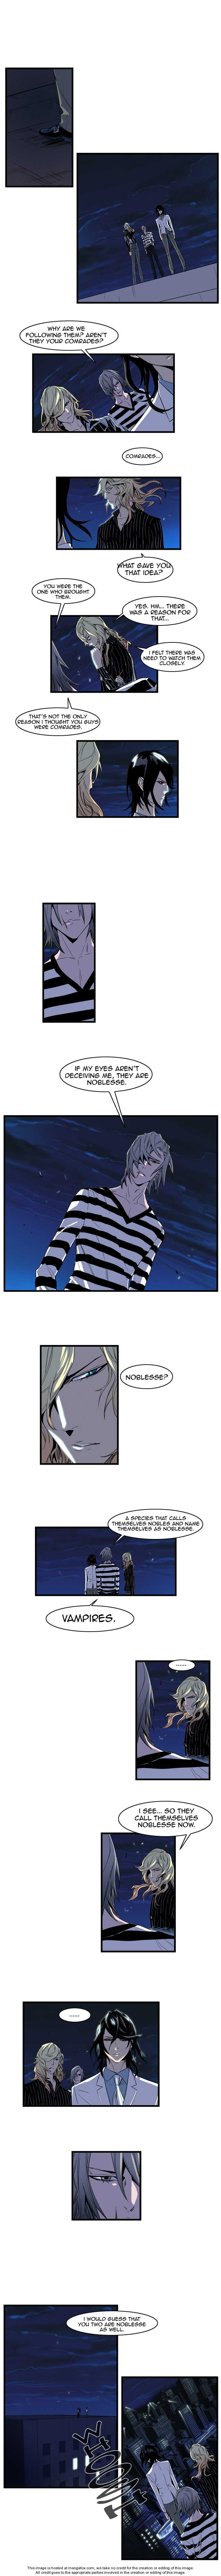 Noblesse 101 Page 2